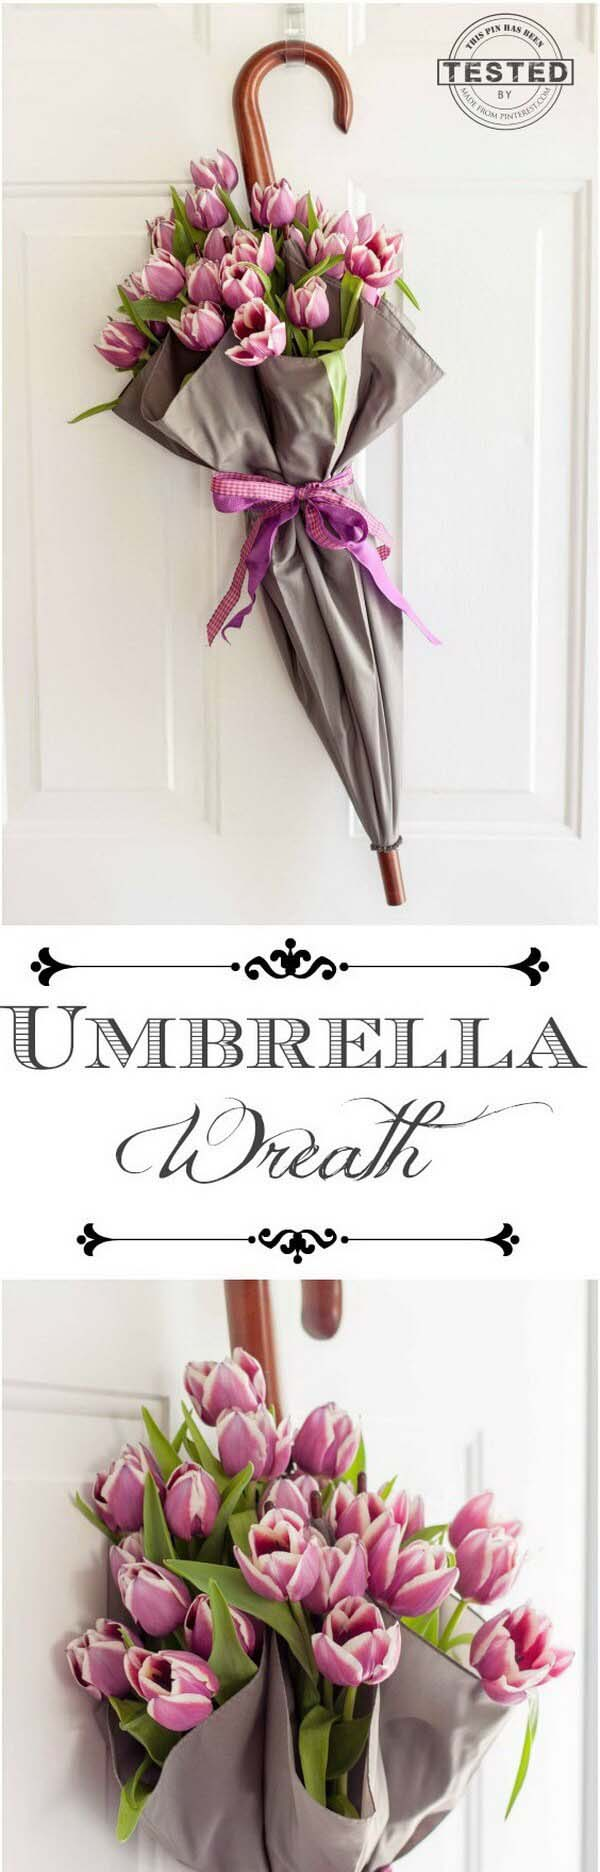 Unique and Whimsical Umbrella Display #spring #decor #decorhomeideas